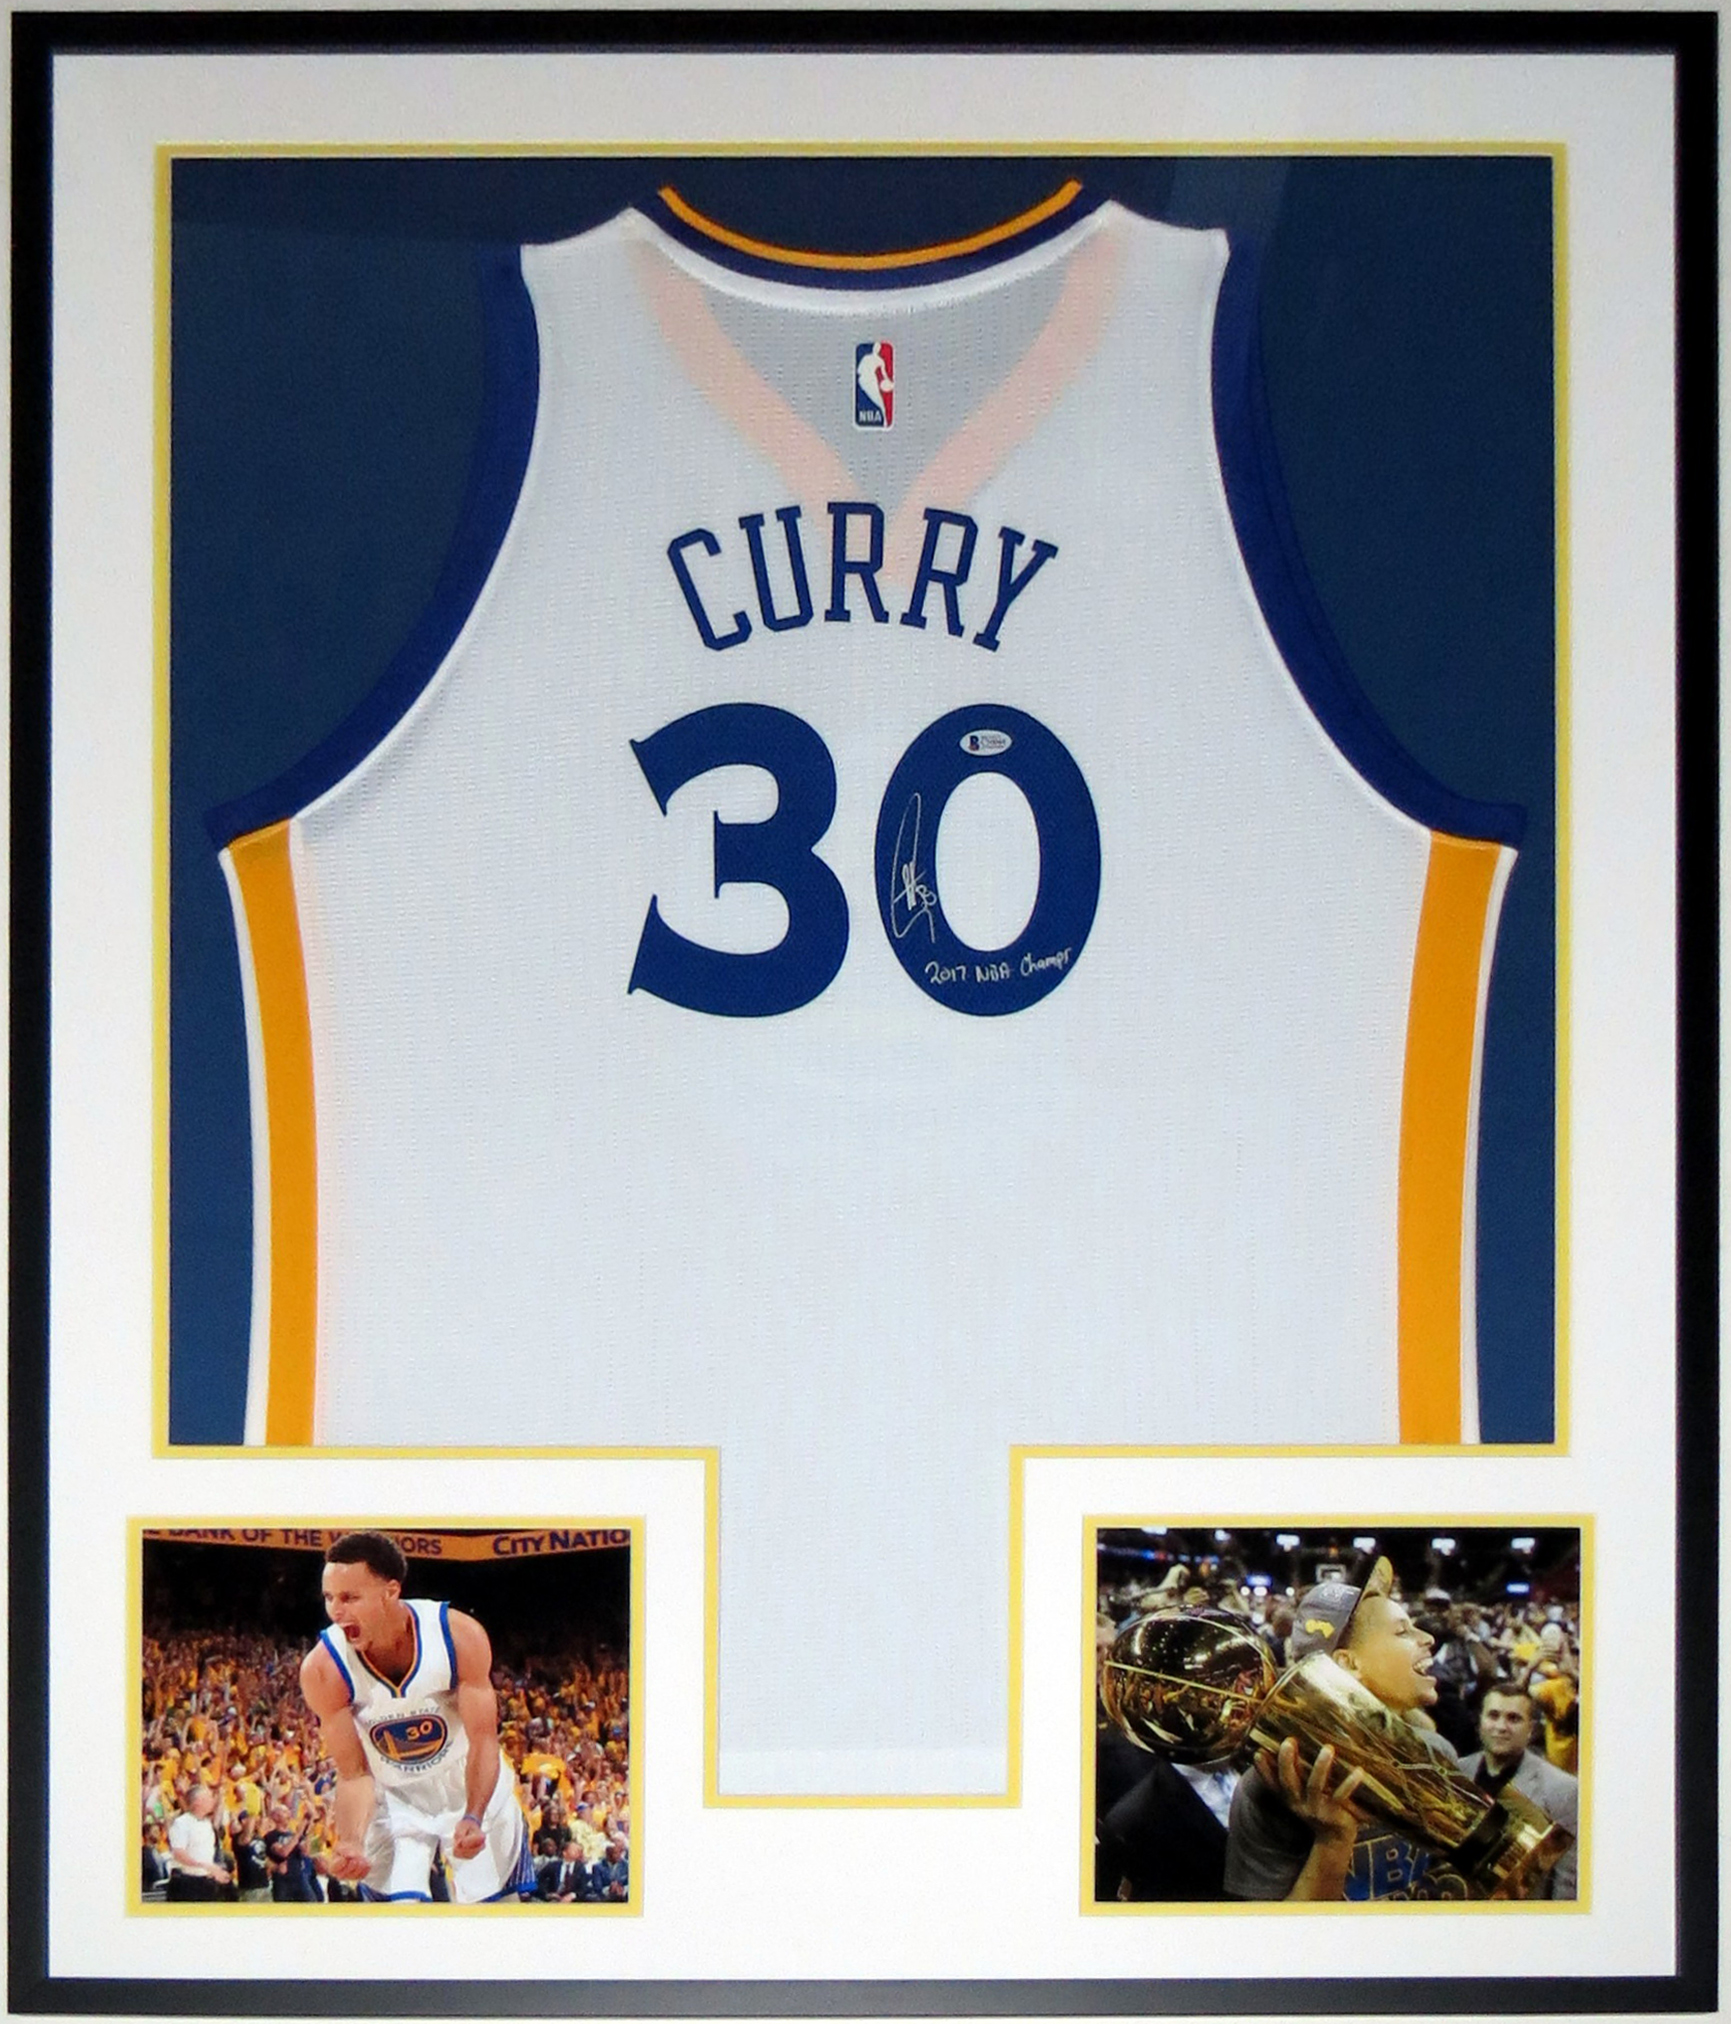 Stephen Curry Autographed Warriors Jersey & 2017 NBA Champs Inscription - BAS Beckett Authenticated COA Authenticated - Professionally Framed & 2 8x10 Photo 34x42